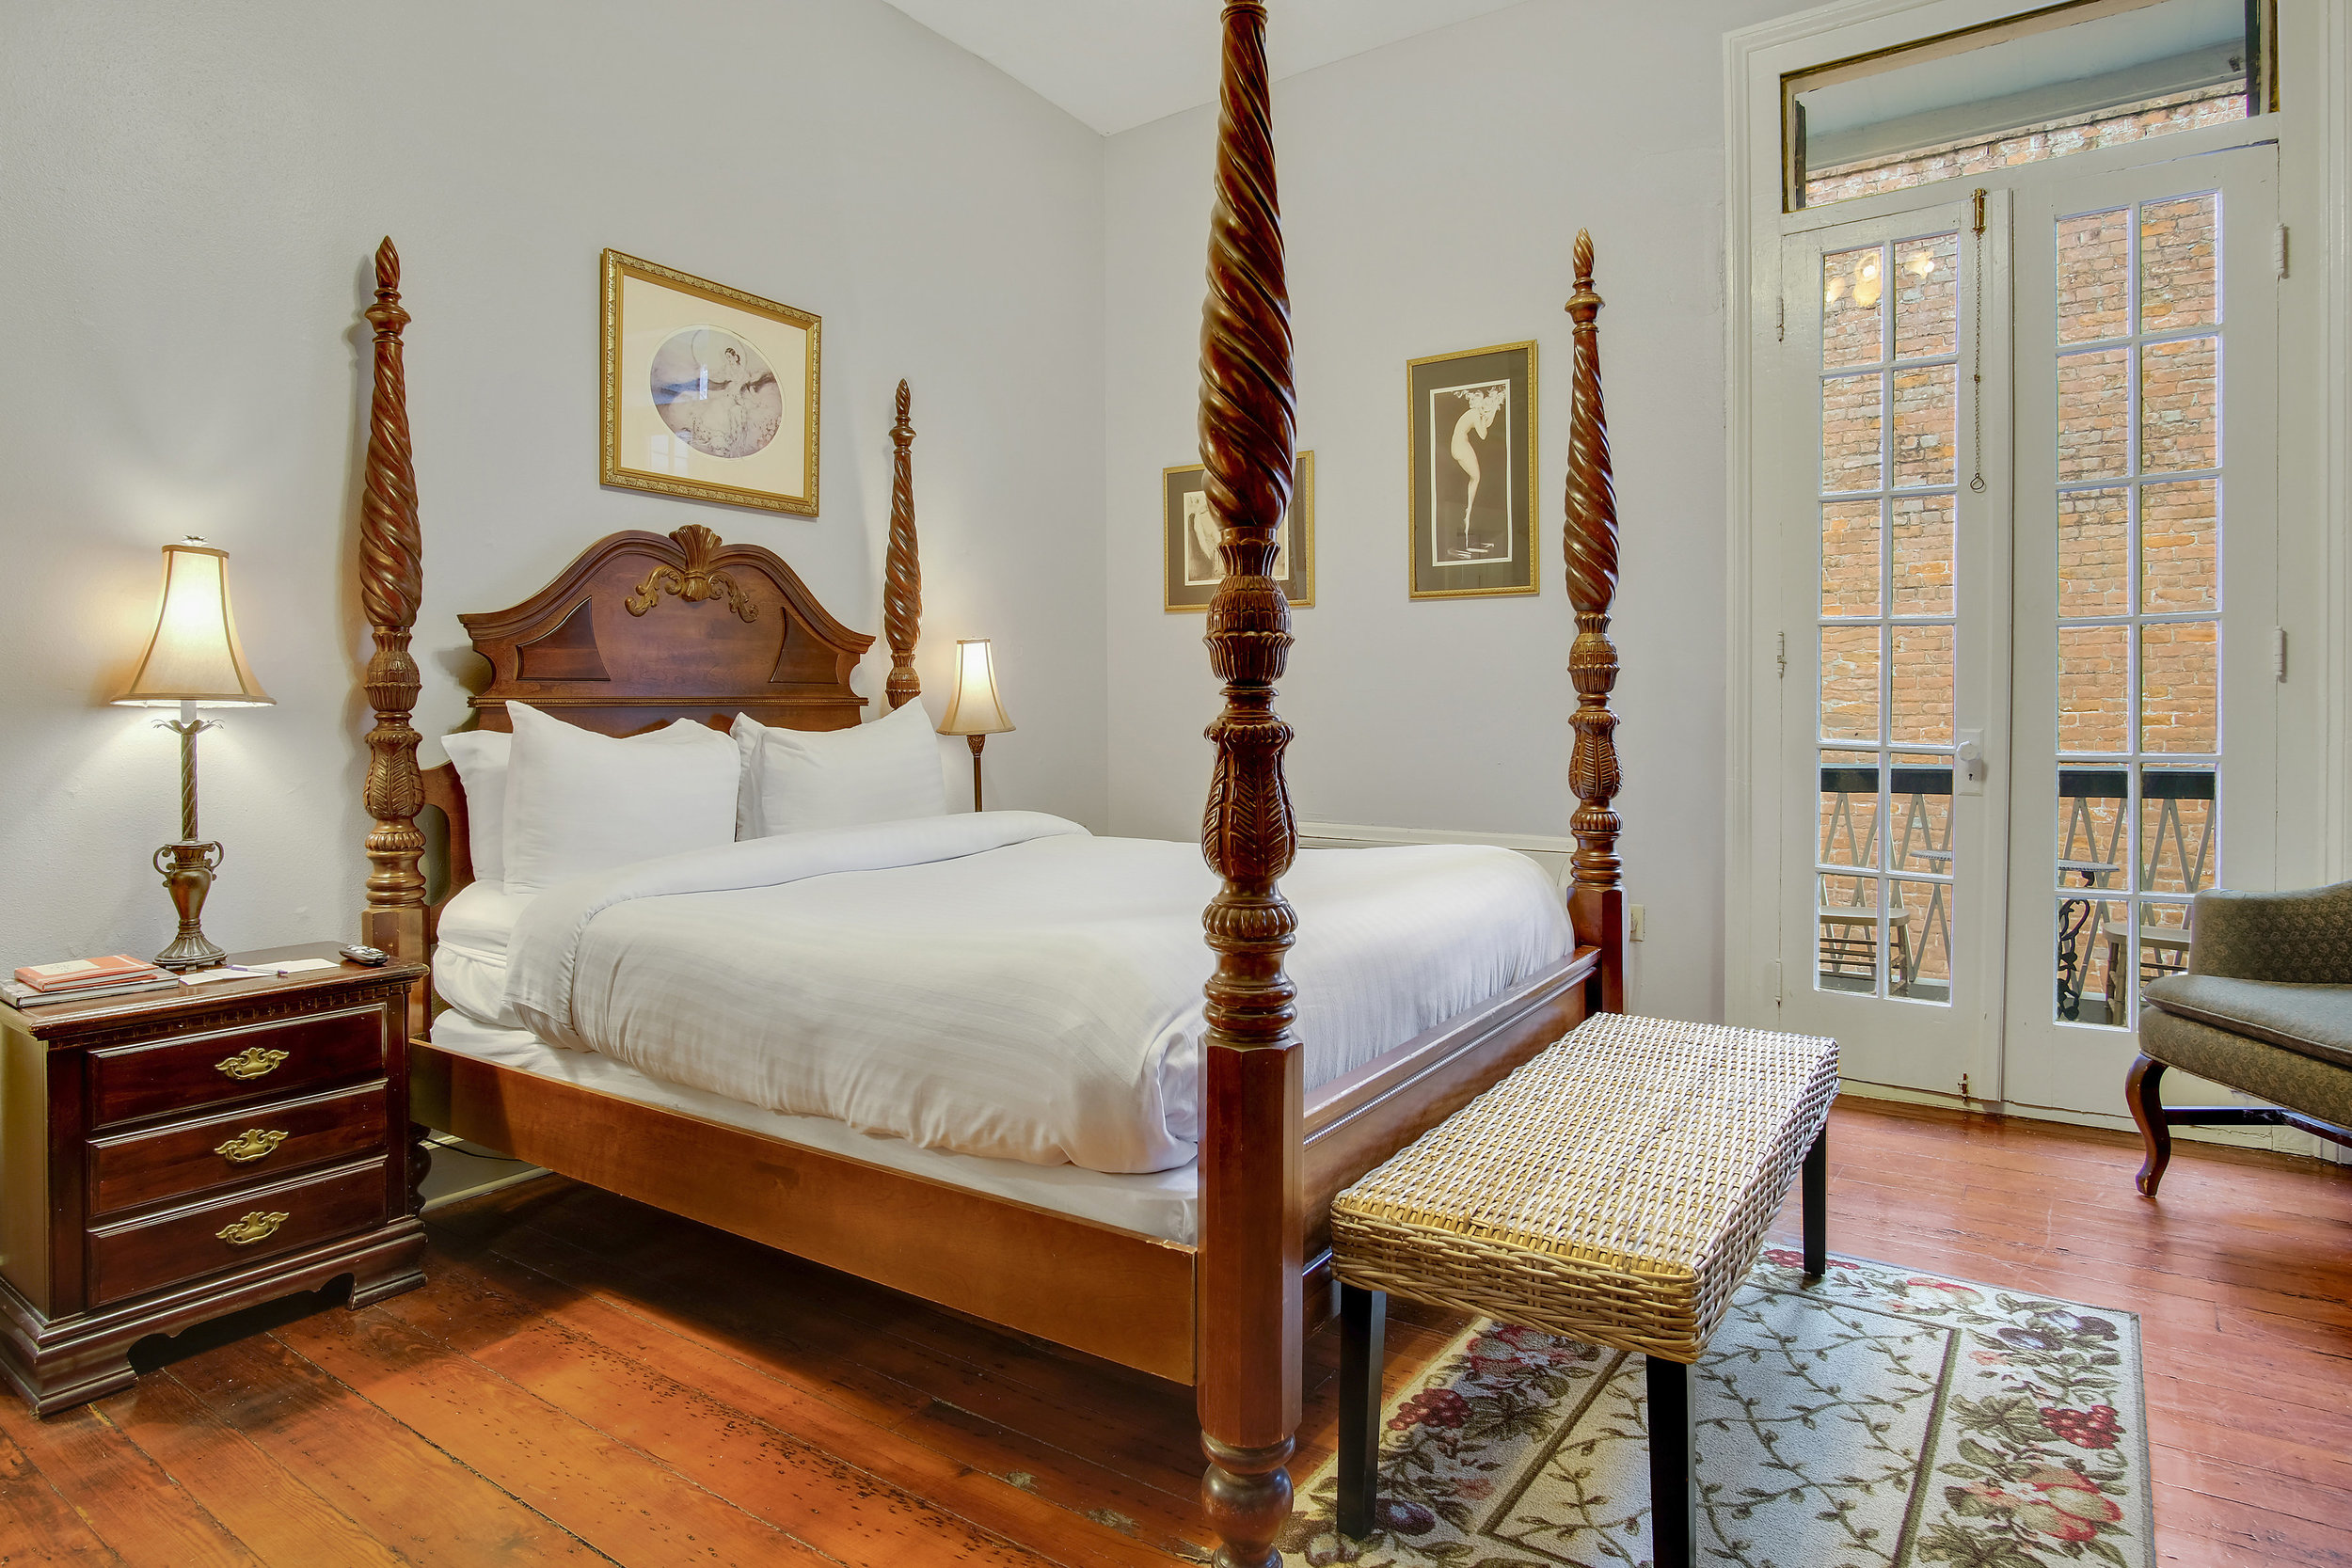 Room 2C  Like a specific room? Let us know when you book and we'll do our best to accommodate you.